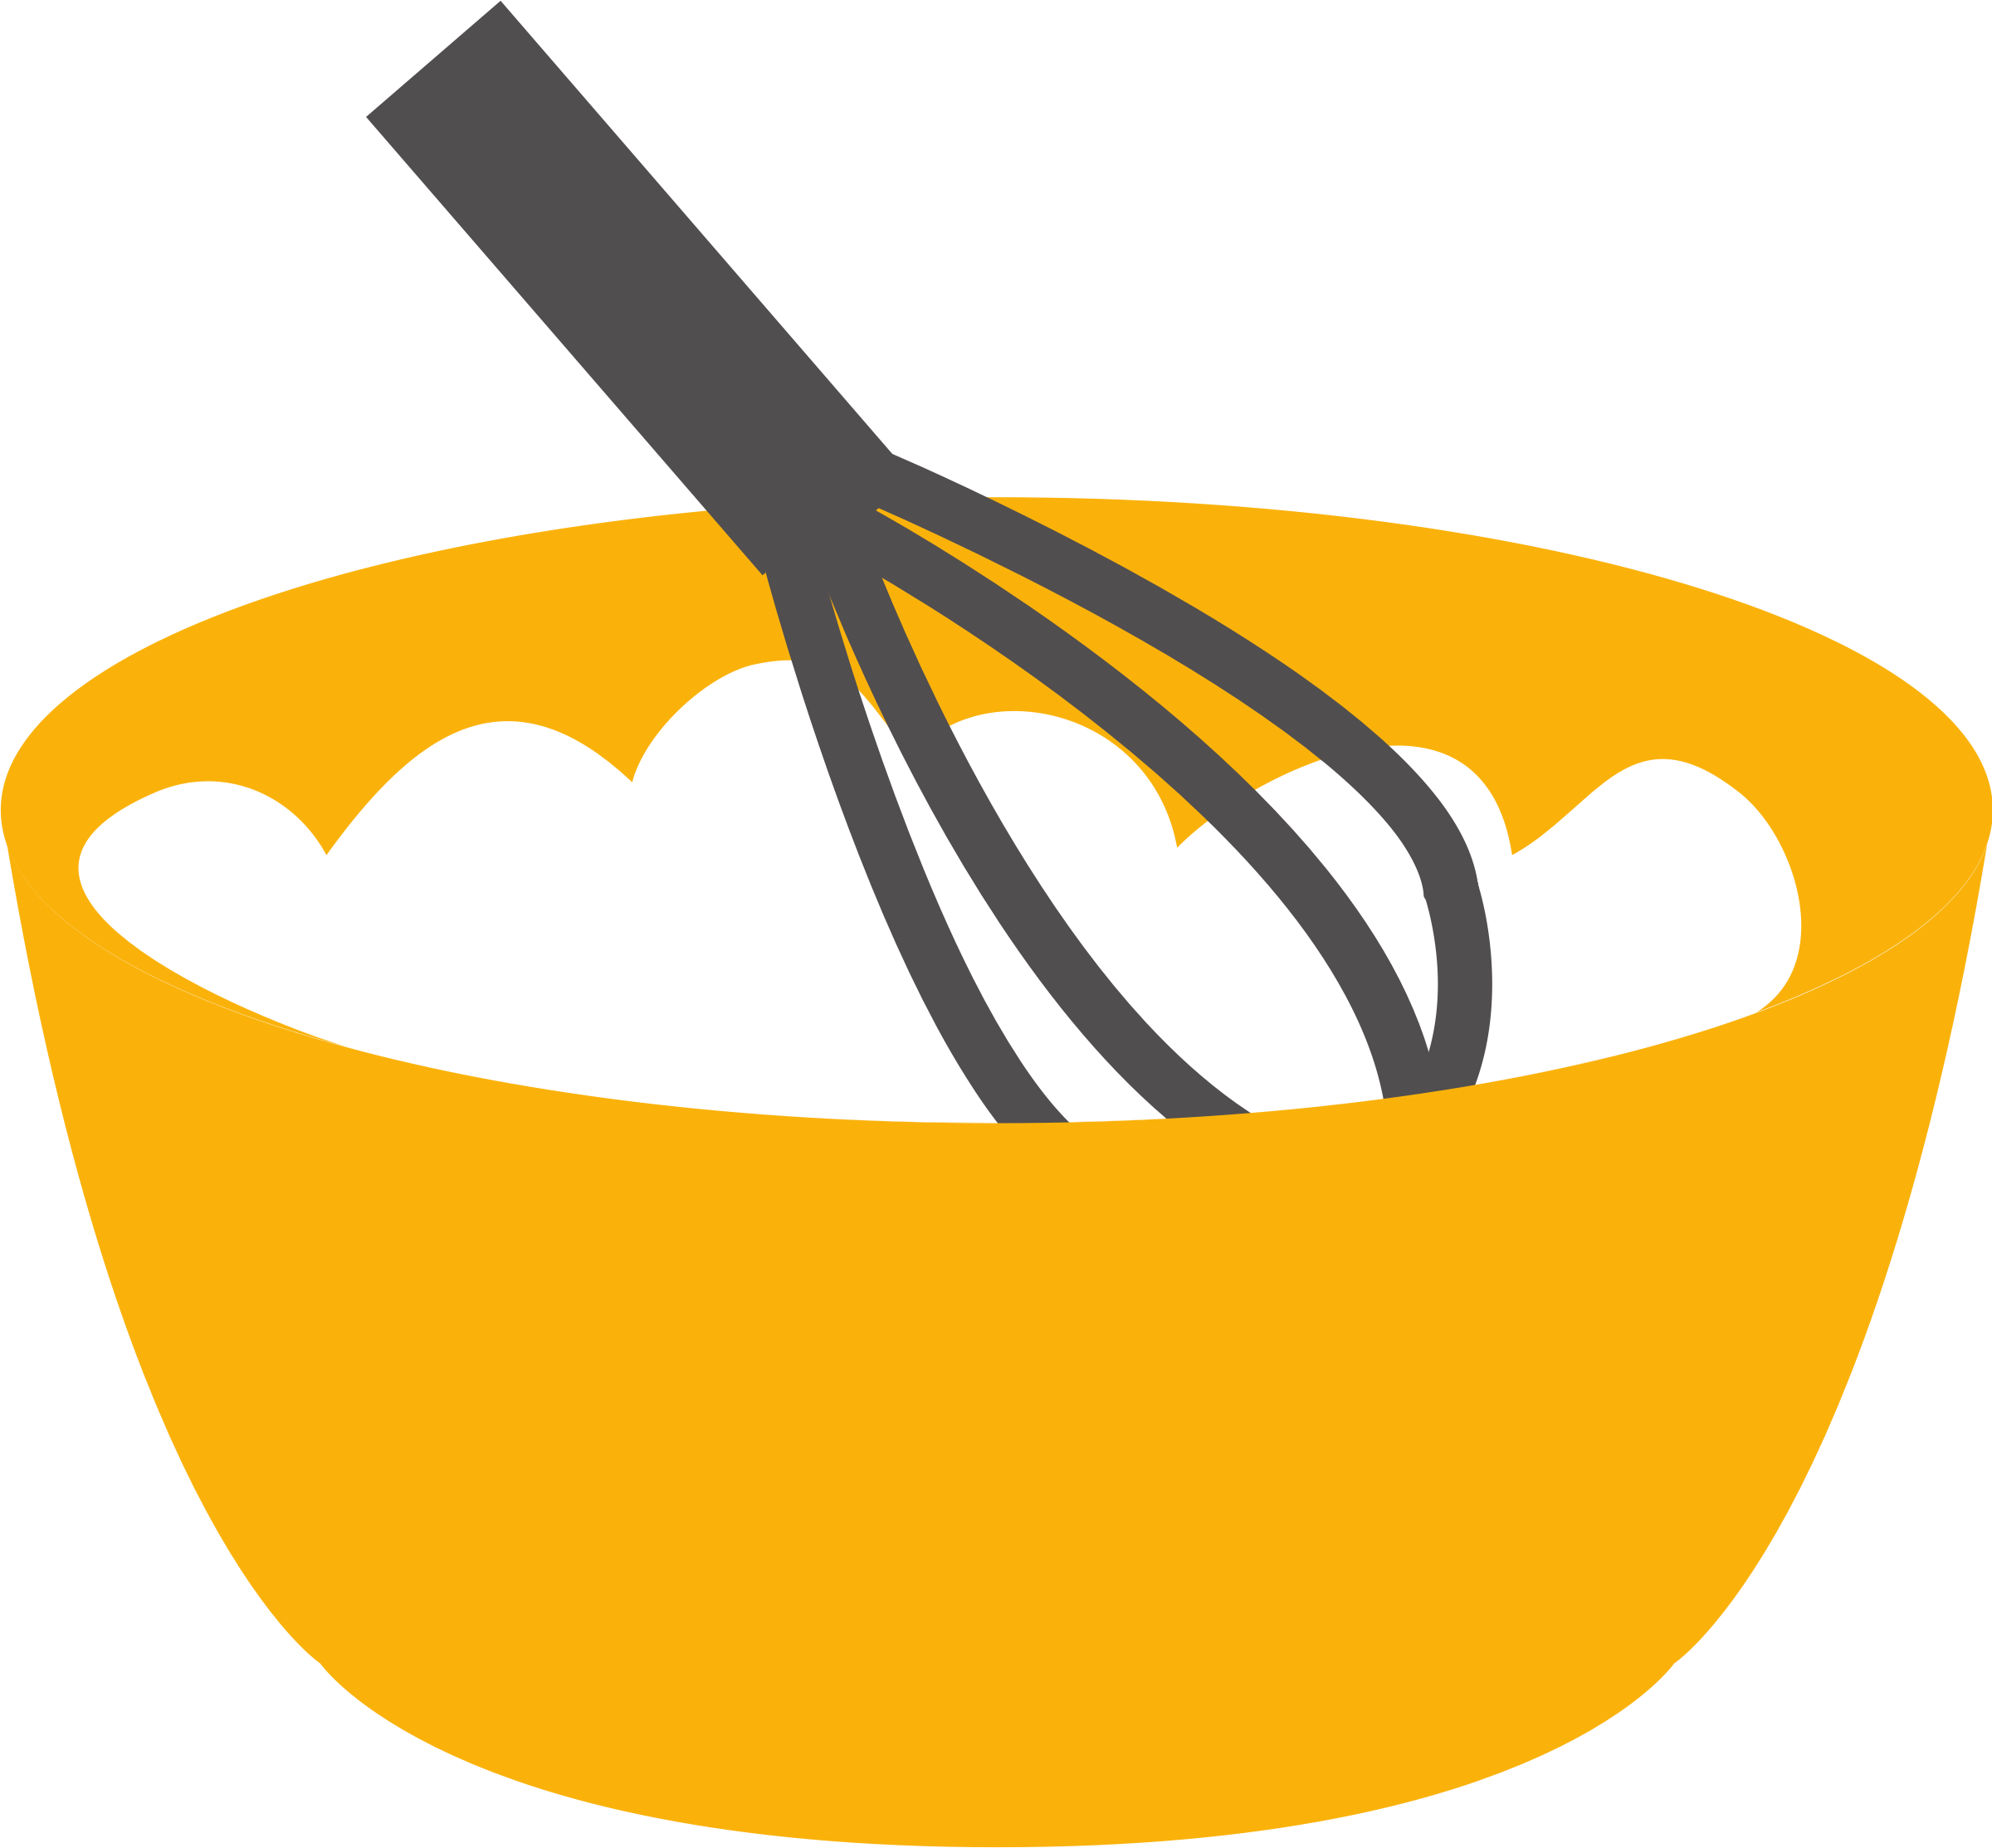 Clipart kitchen kichen. Whisk bowl utensil tableware